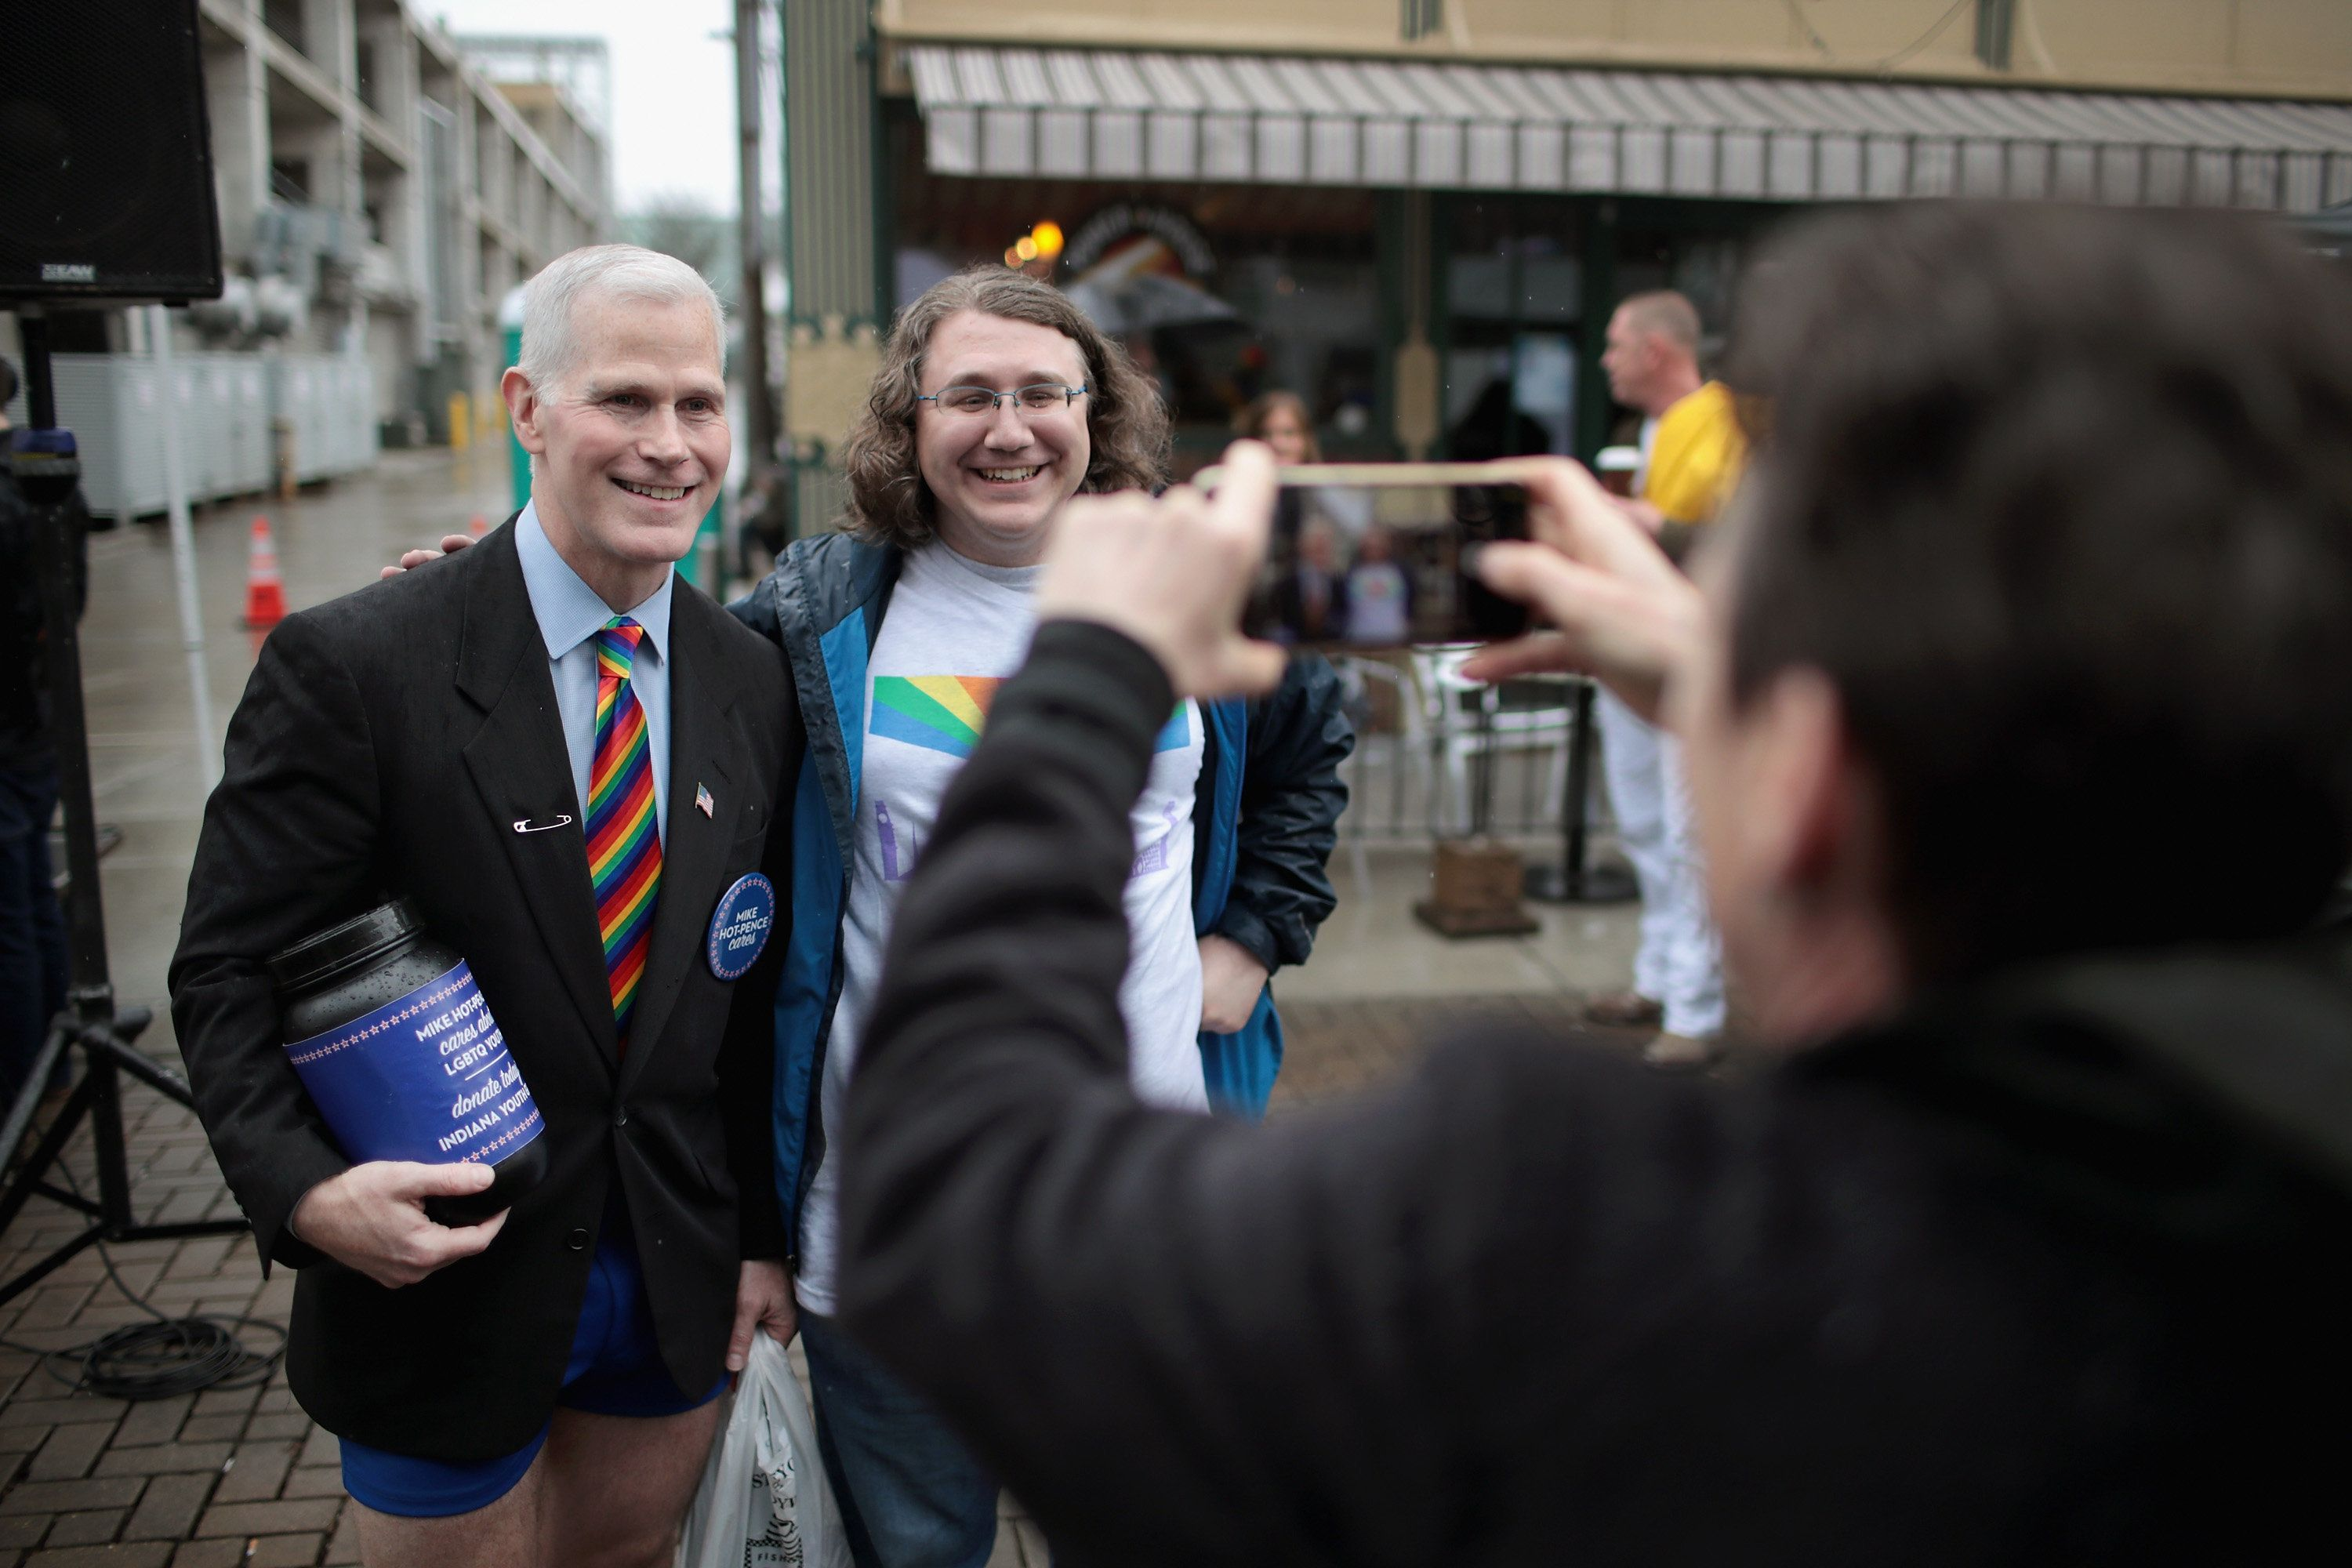 COLUMBUS, IN - APRIL 14:  Glen Pannell, also known as Mike Hot-Pence, poses for pictures with other visitors at the Columbus Pride Festival on April 14, 2018 in Columbus, Indiana. The festival was the first LGBT pride event for the community which is the hometown of Vice President Mike Pence, a vocal opponent of LGBT issues. The festival, organized by high school senior Erin Bailey, drew hundreds of visitors to the small community located about 45 miles south of Indianapolis.  (Photo by Scott Olson/Getty Images)